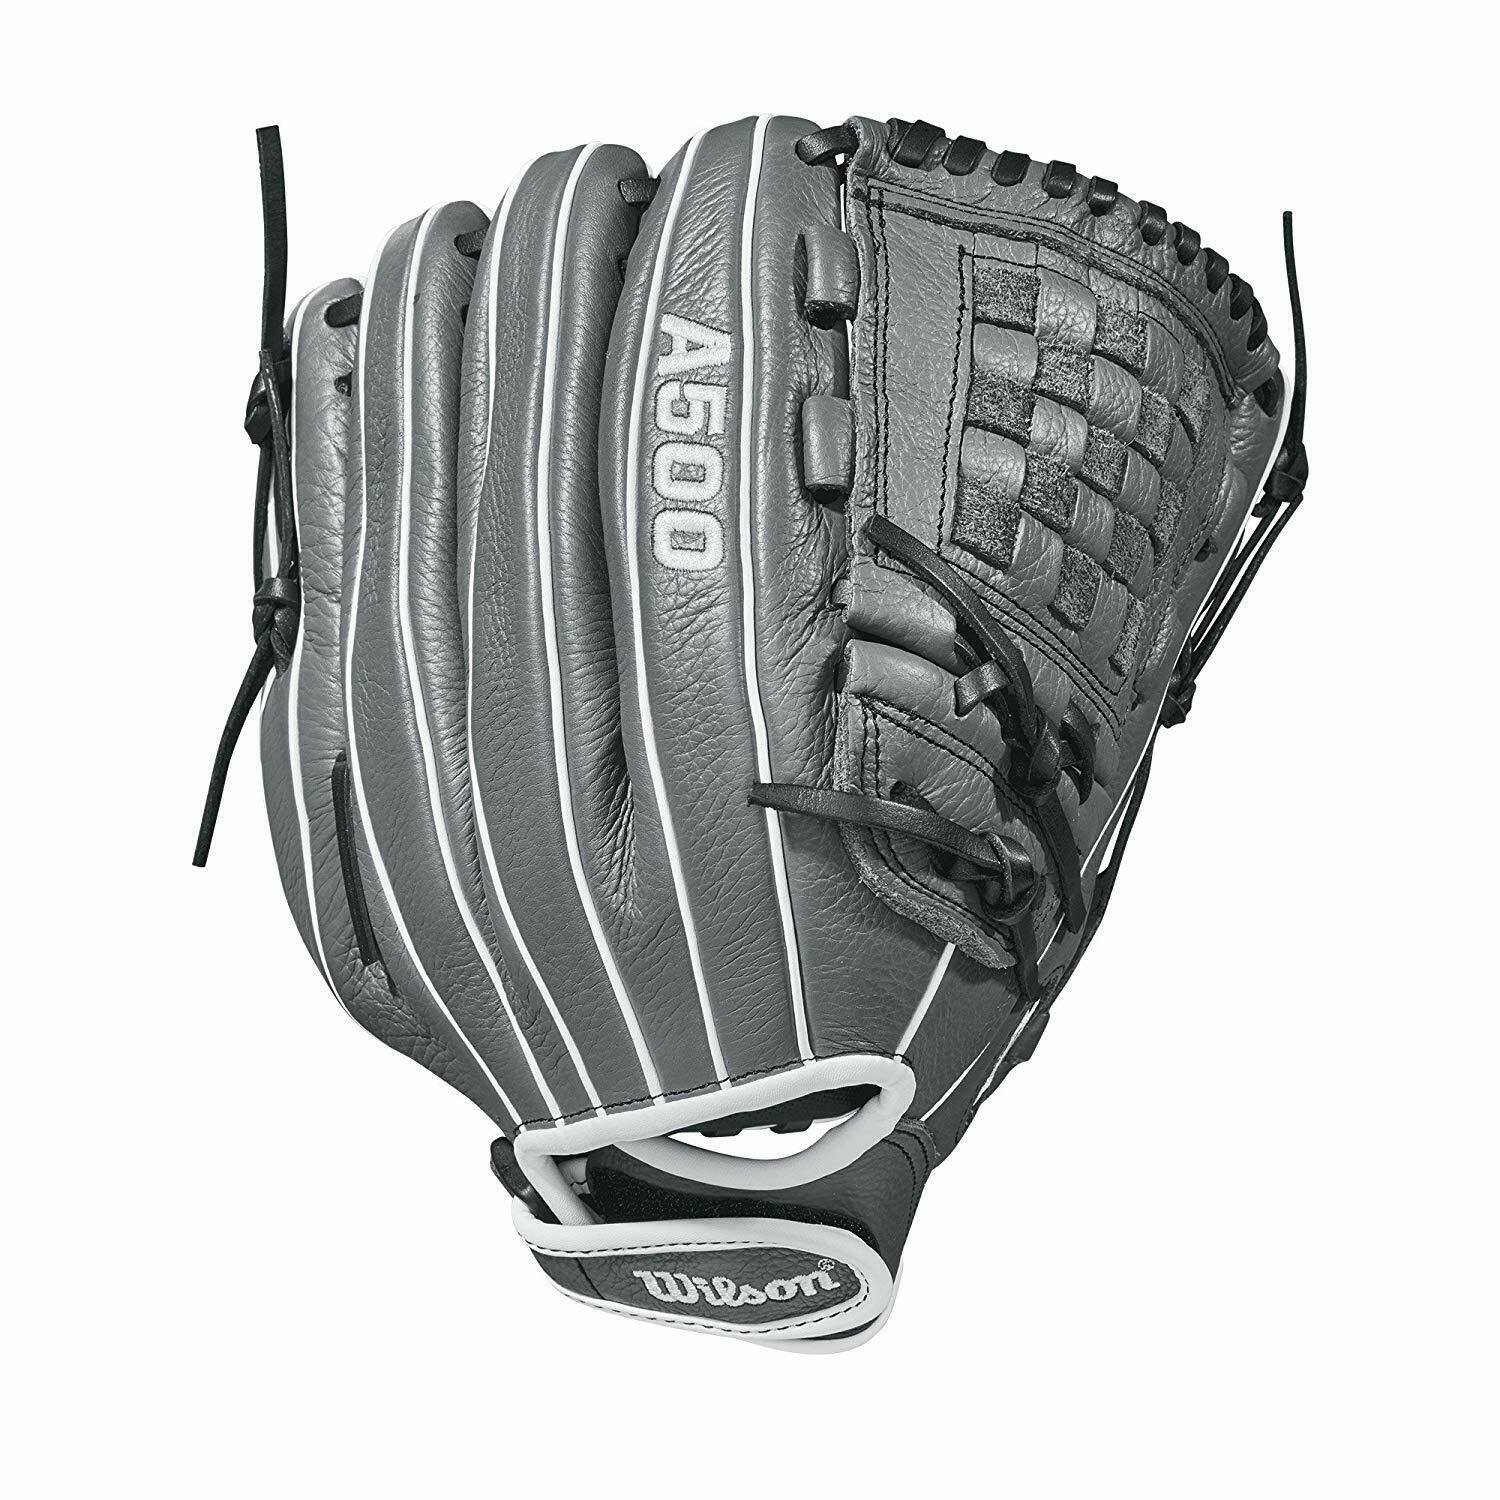 Wilson A500 Sirena Fastpitch Softball guante 12in LHT Grafito gris